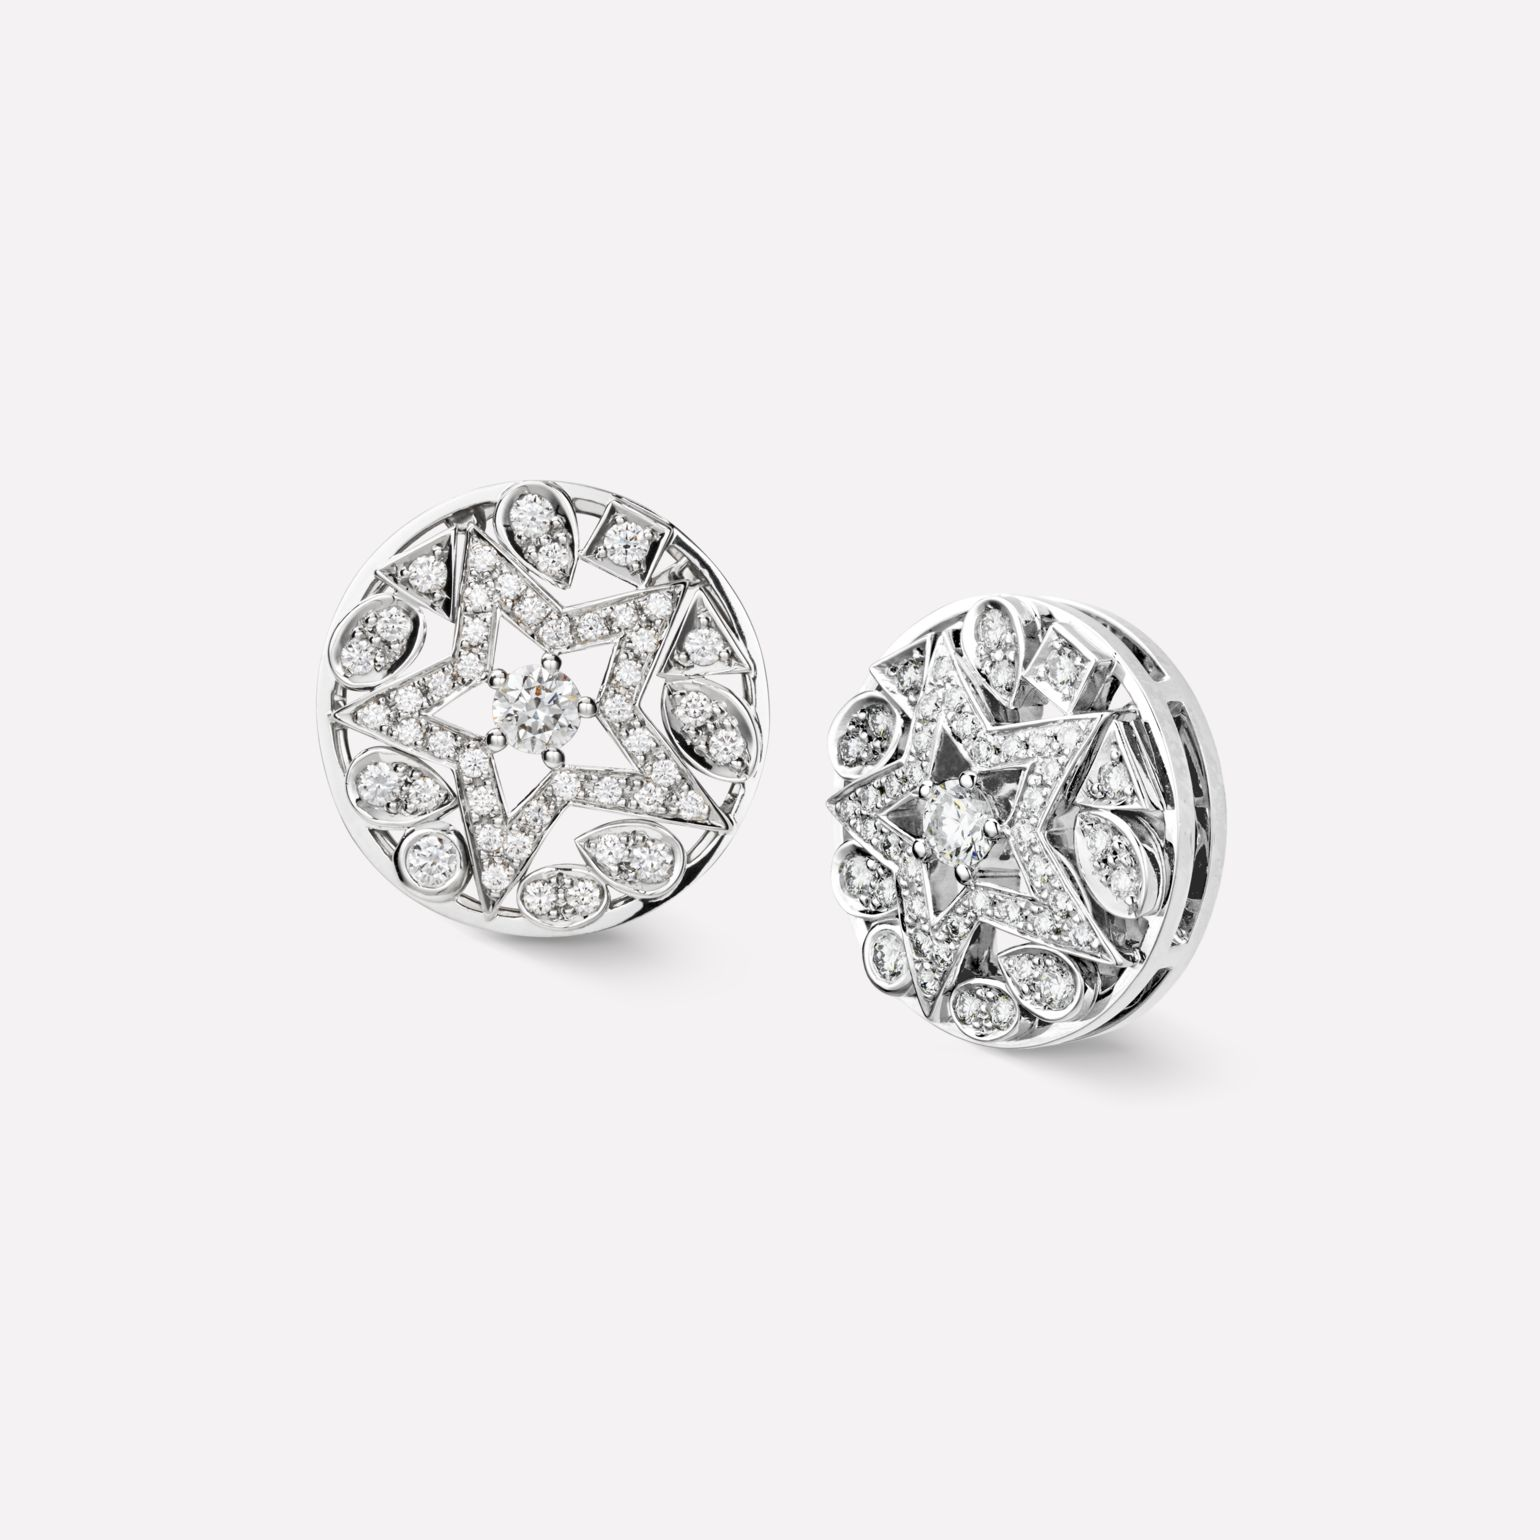 Comète earrings Round star earrings, in 18K white gold and diamonds with one center diamond